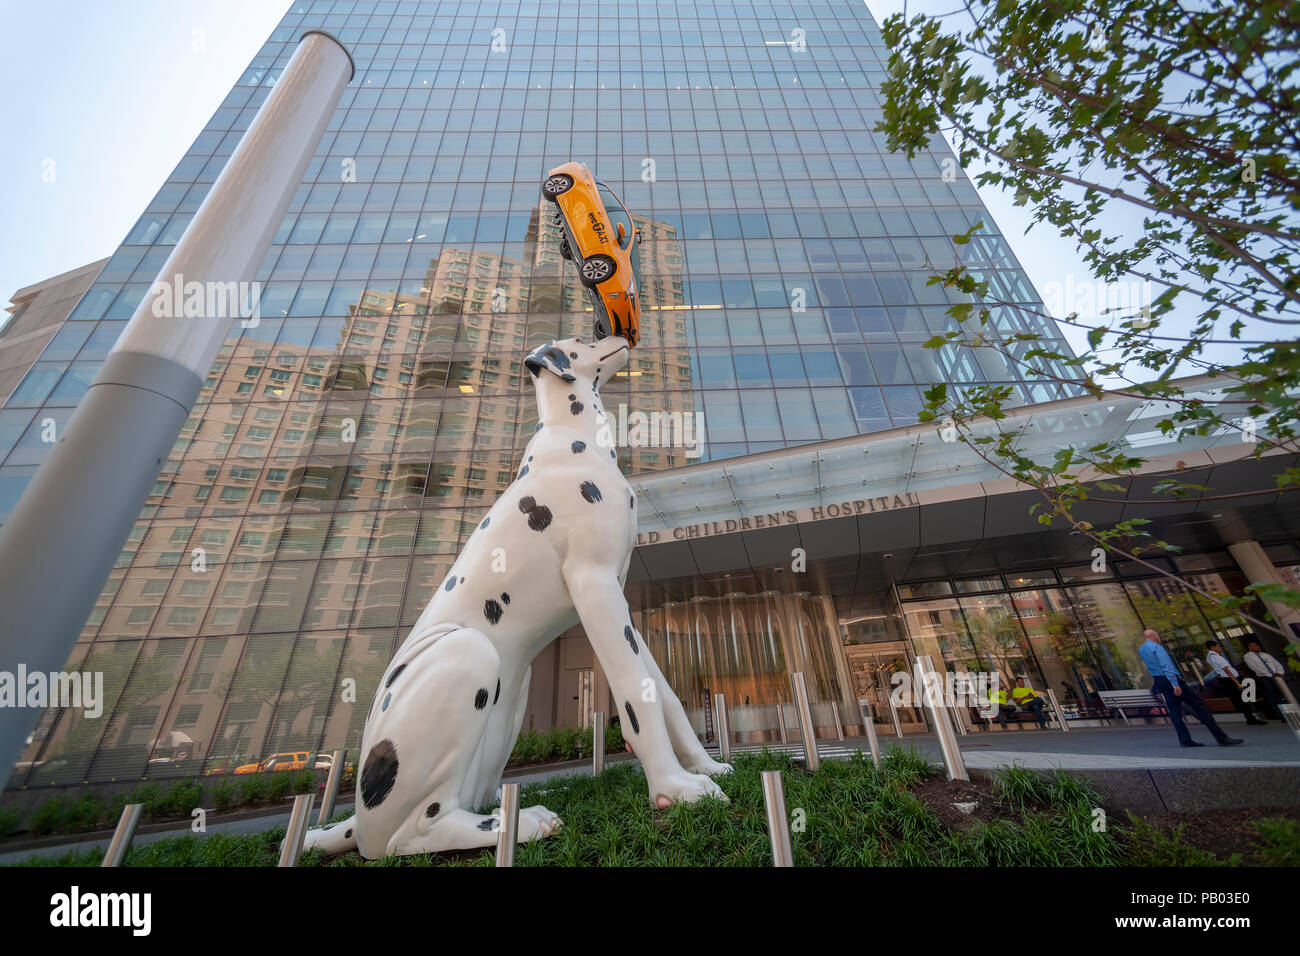 Nyu Hospital Stock Photos & Nyu Hospital Stock Images - Alamy